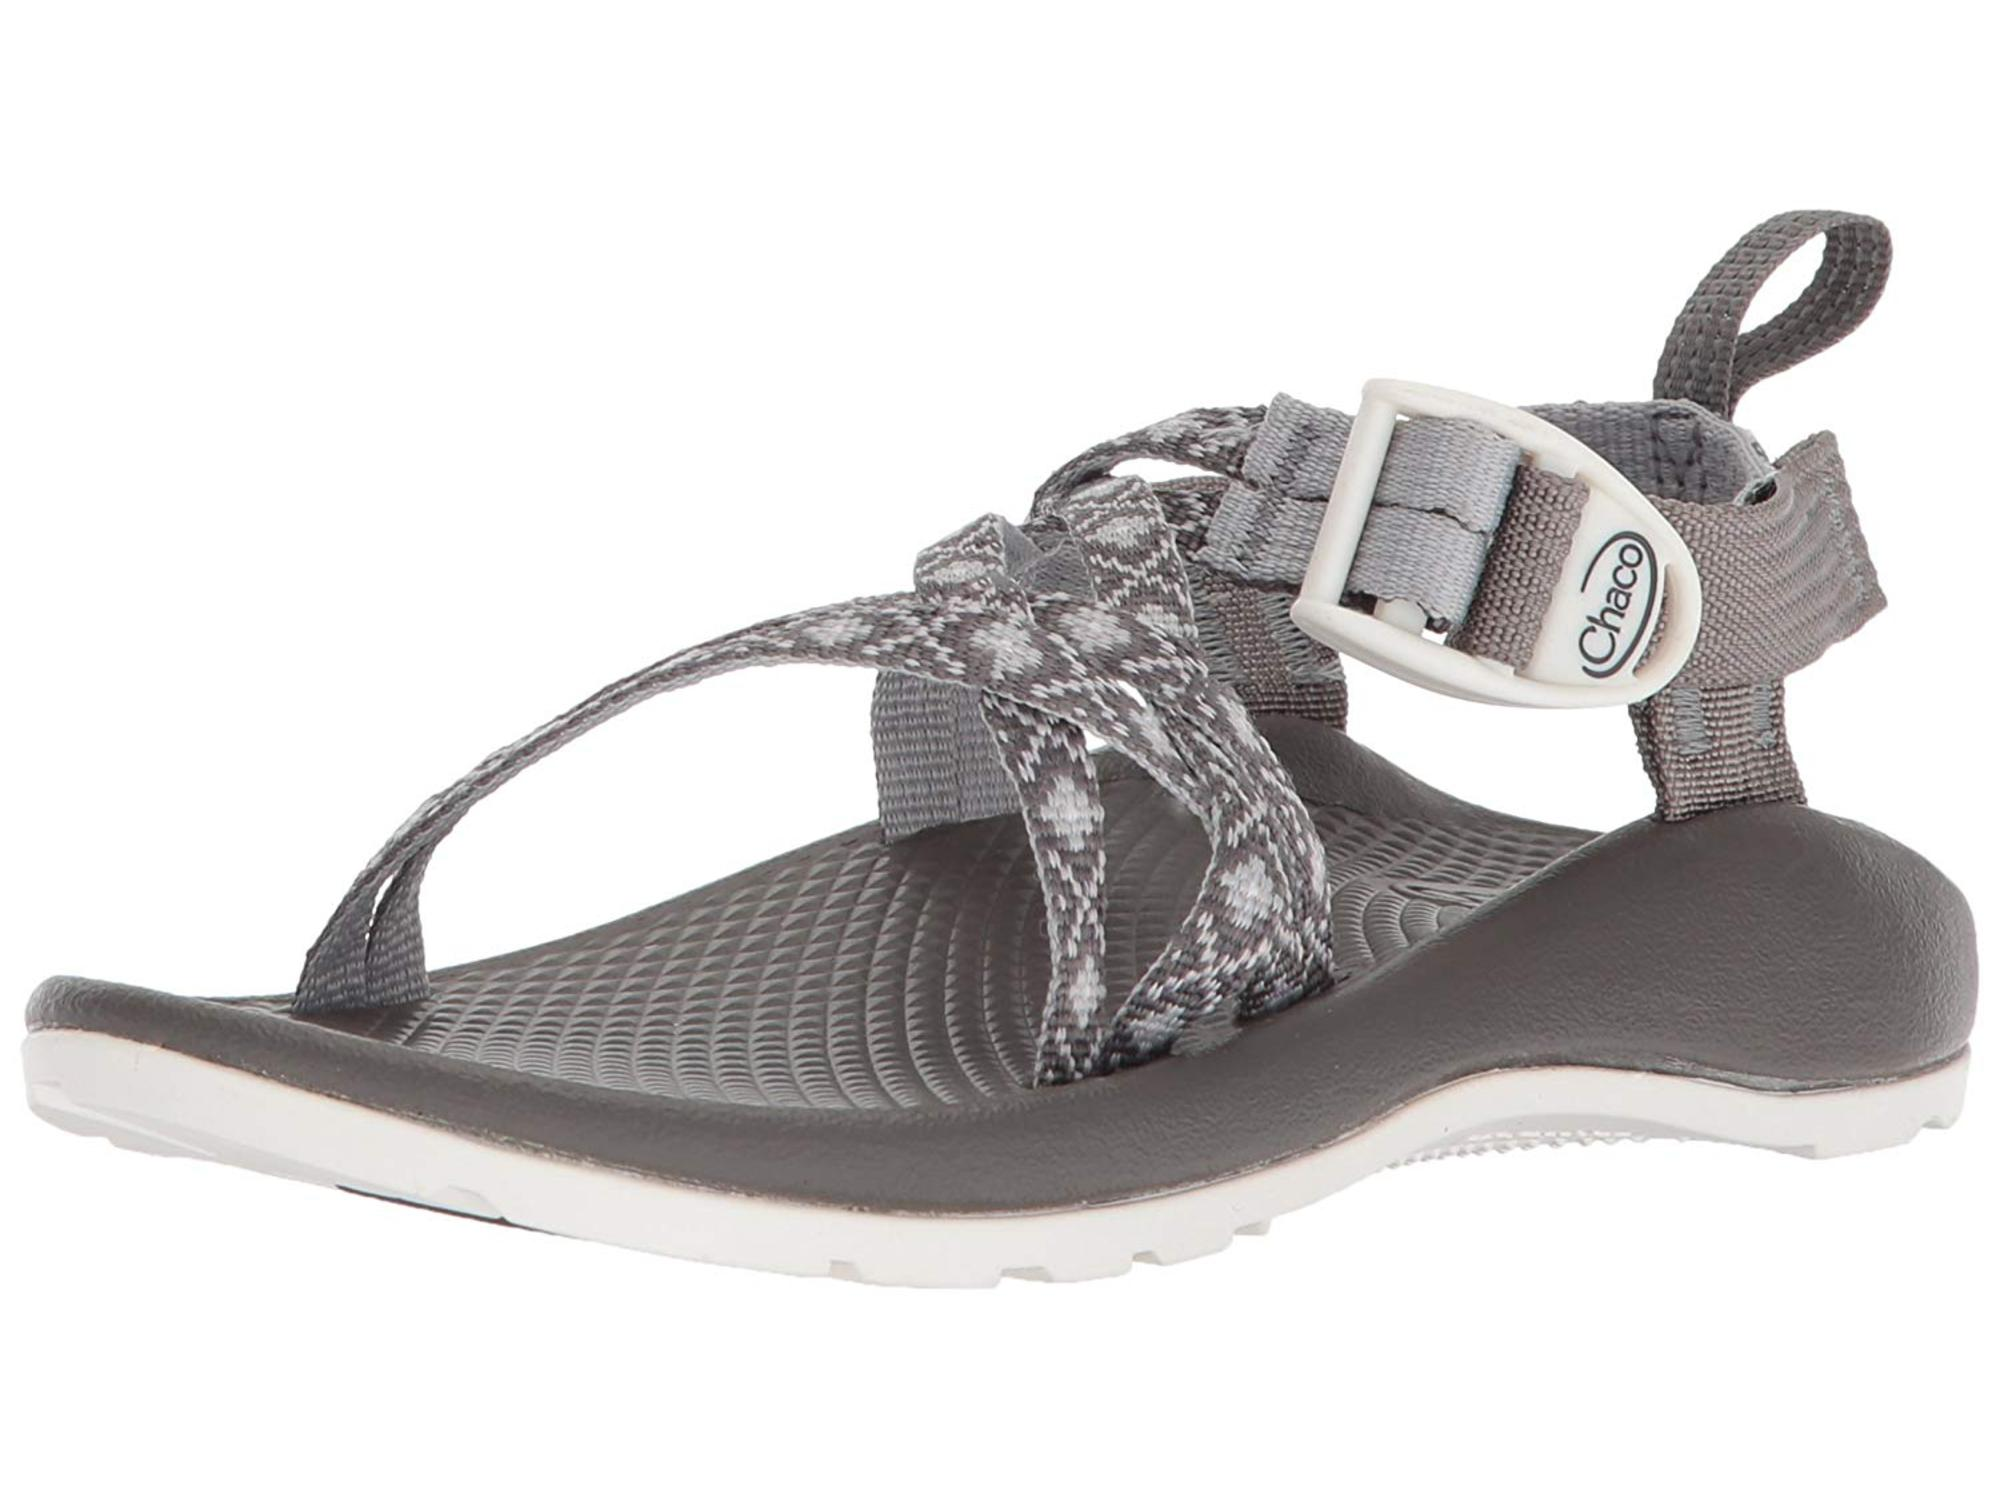 48e5176ec Chaco - Chaco Zx1 Ecotread Sandal (Toddler Little Kid Big Kid) - Walmart.com